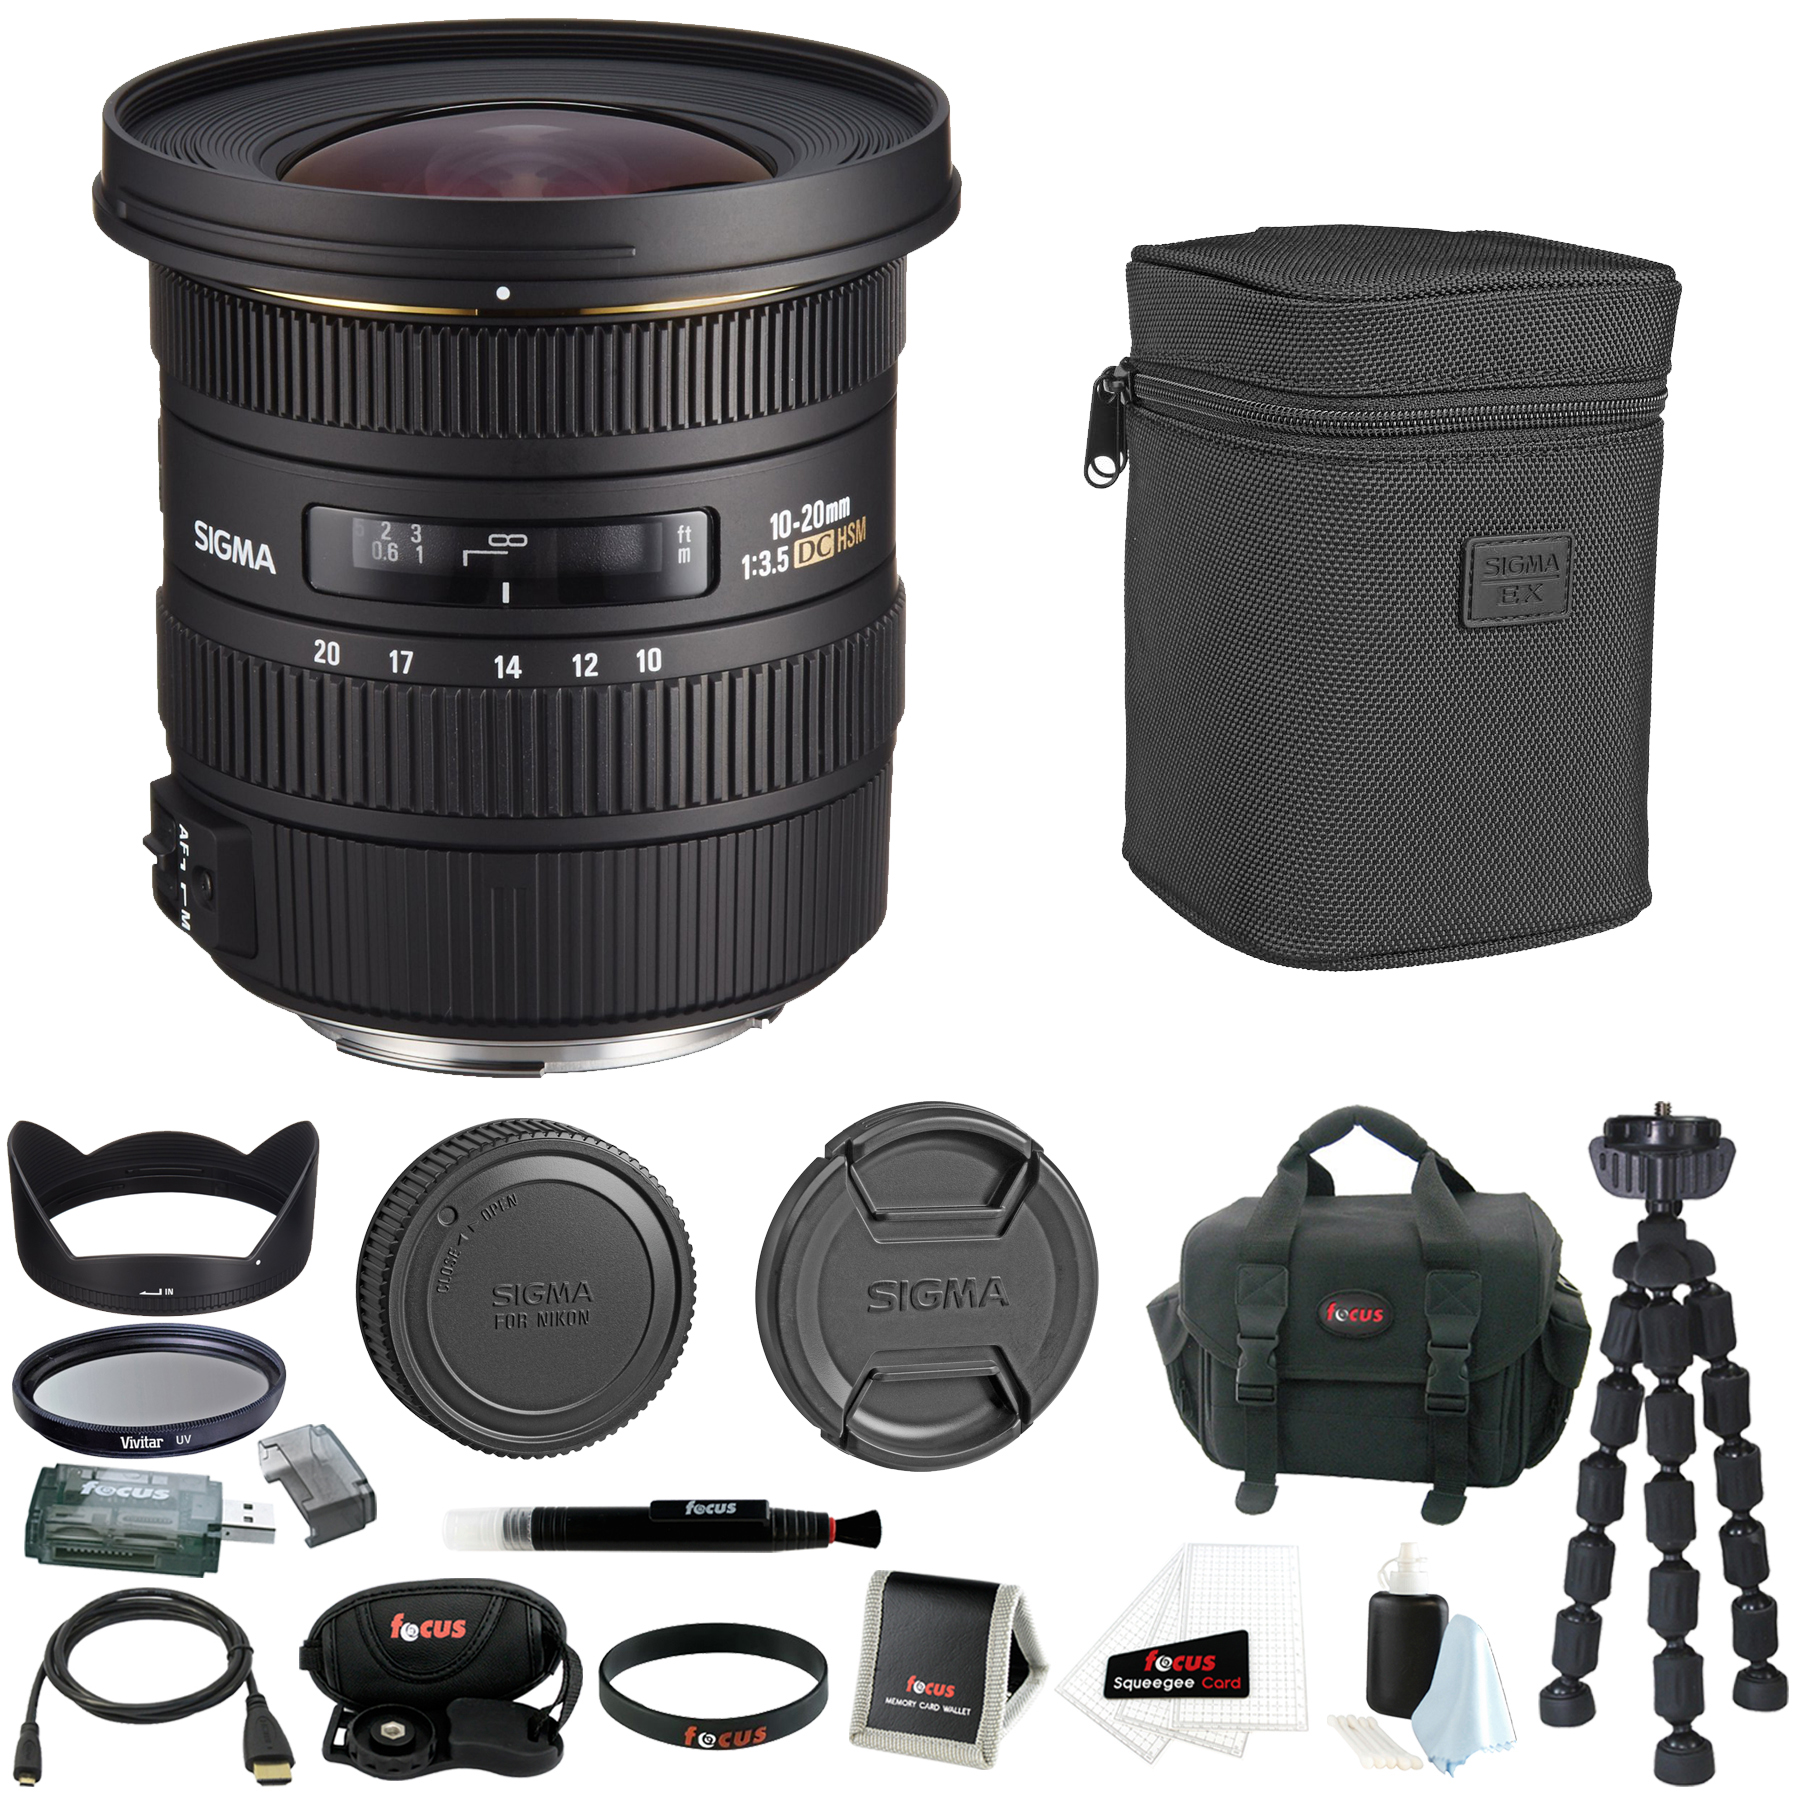 Sigma 10-20mm f/3.5 EX DC HSM Autofocus Zoom Lens For Nikon Camera Bundle